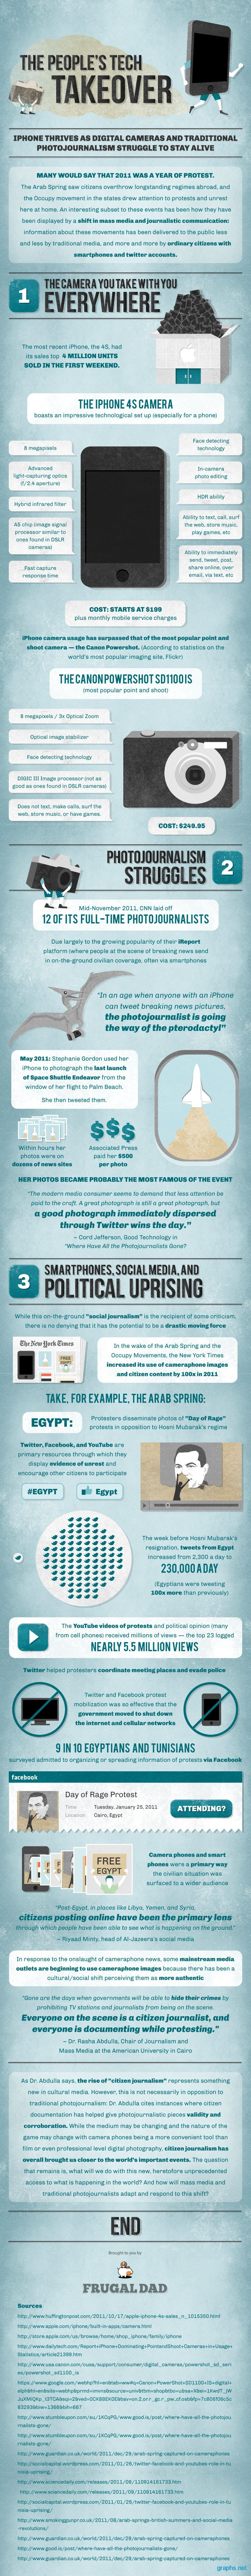 Photojournalism Iphone Infographic